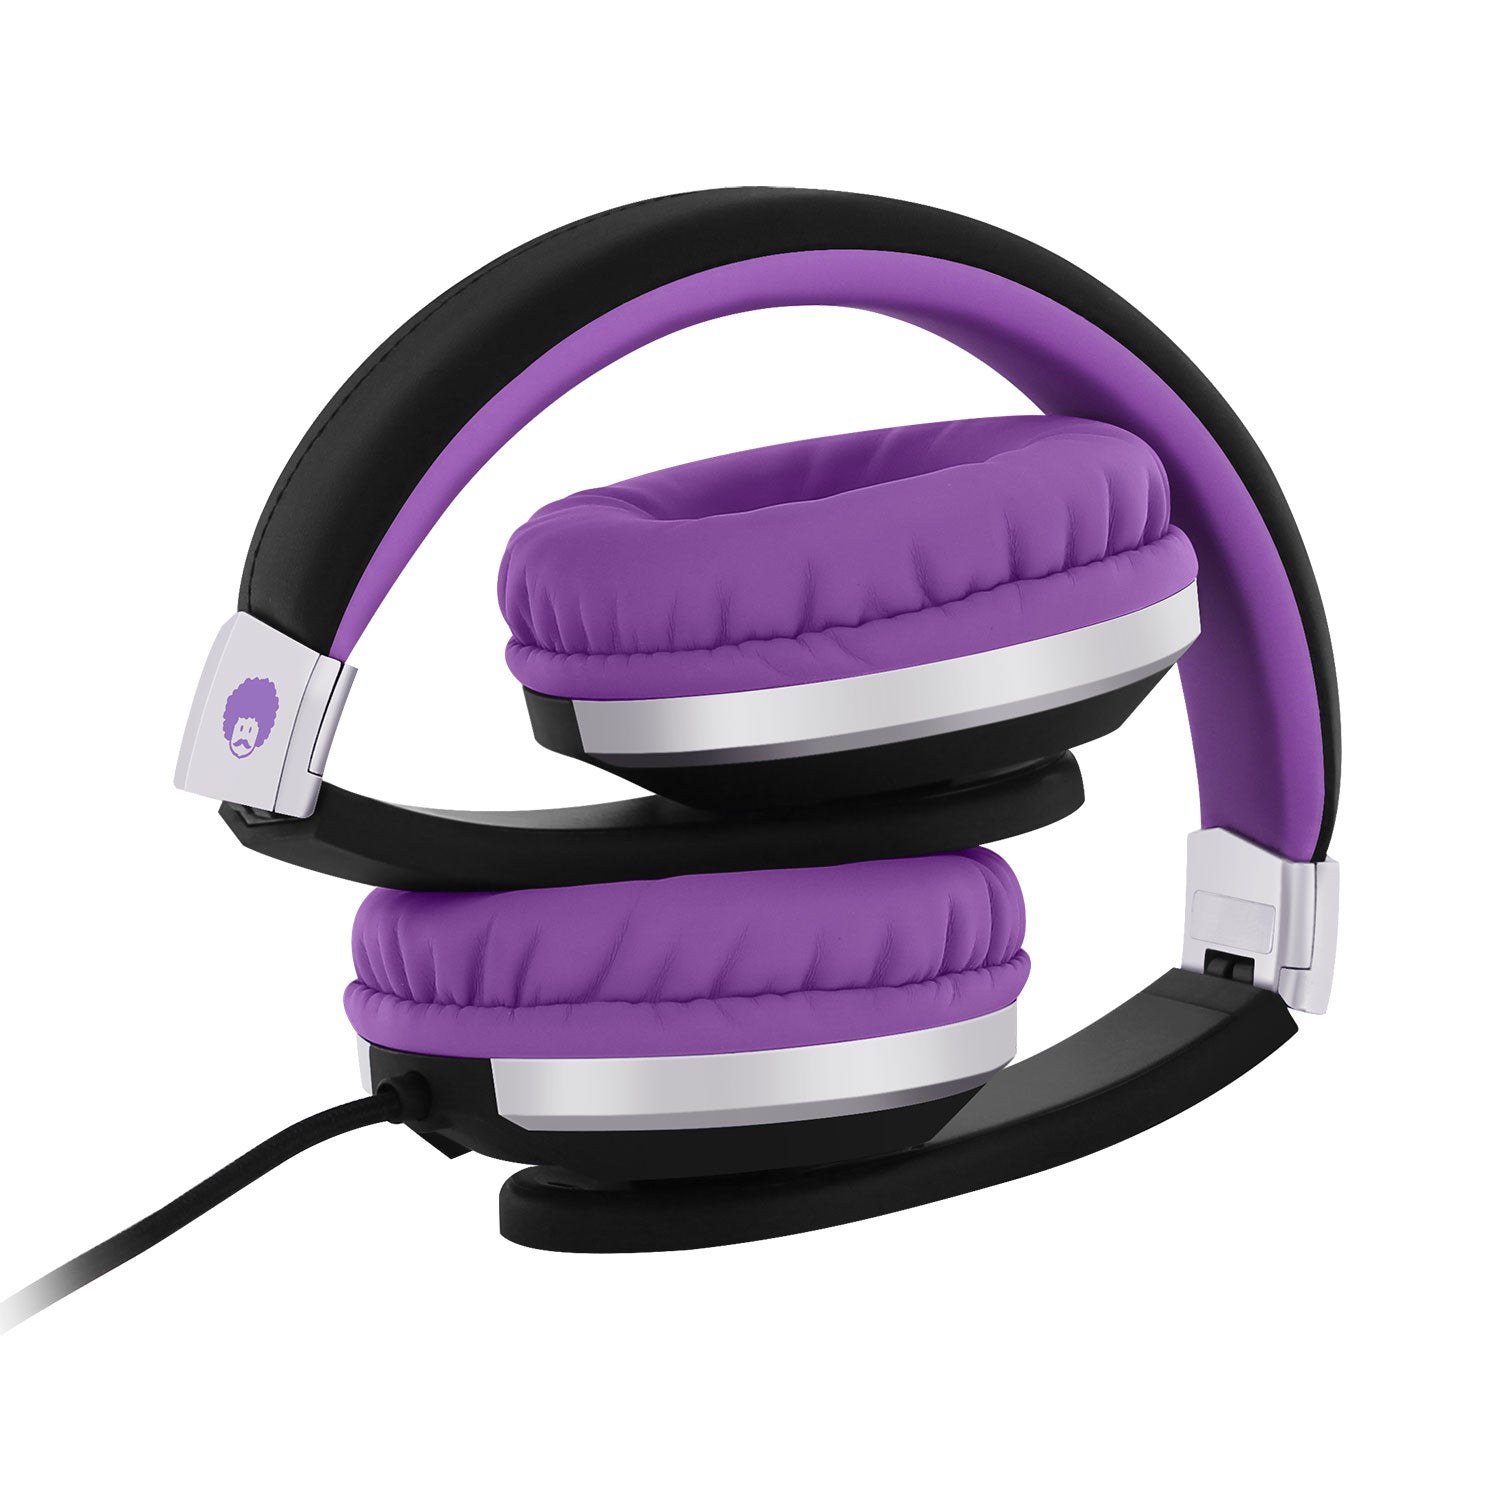 I20 Kids Foldable School Stereo Headphones Purple Black